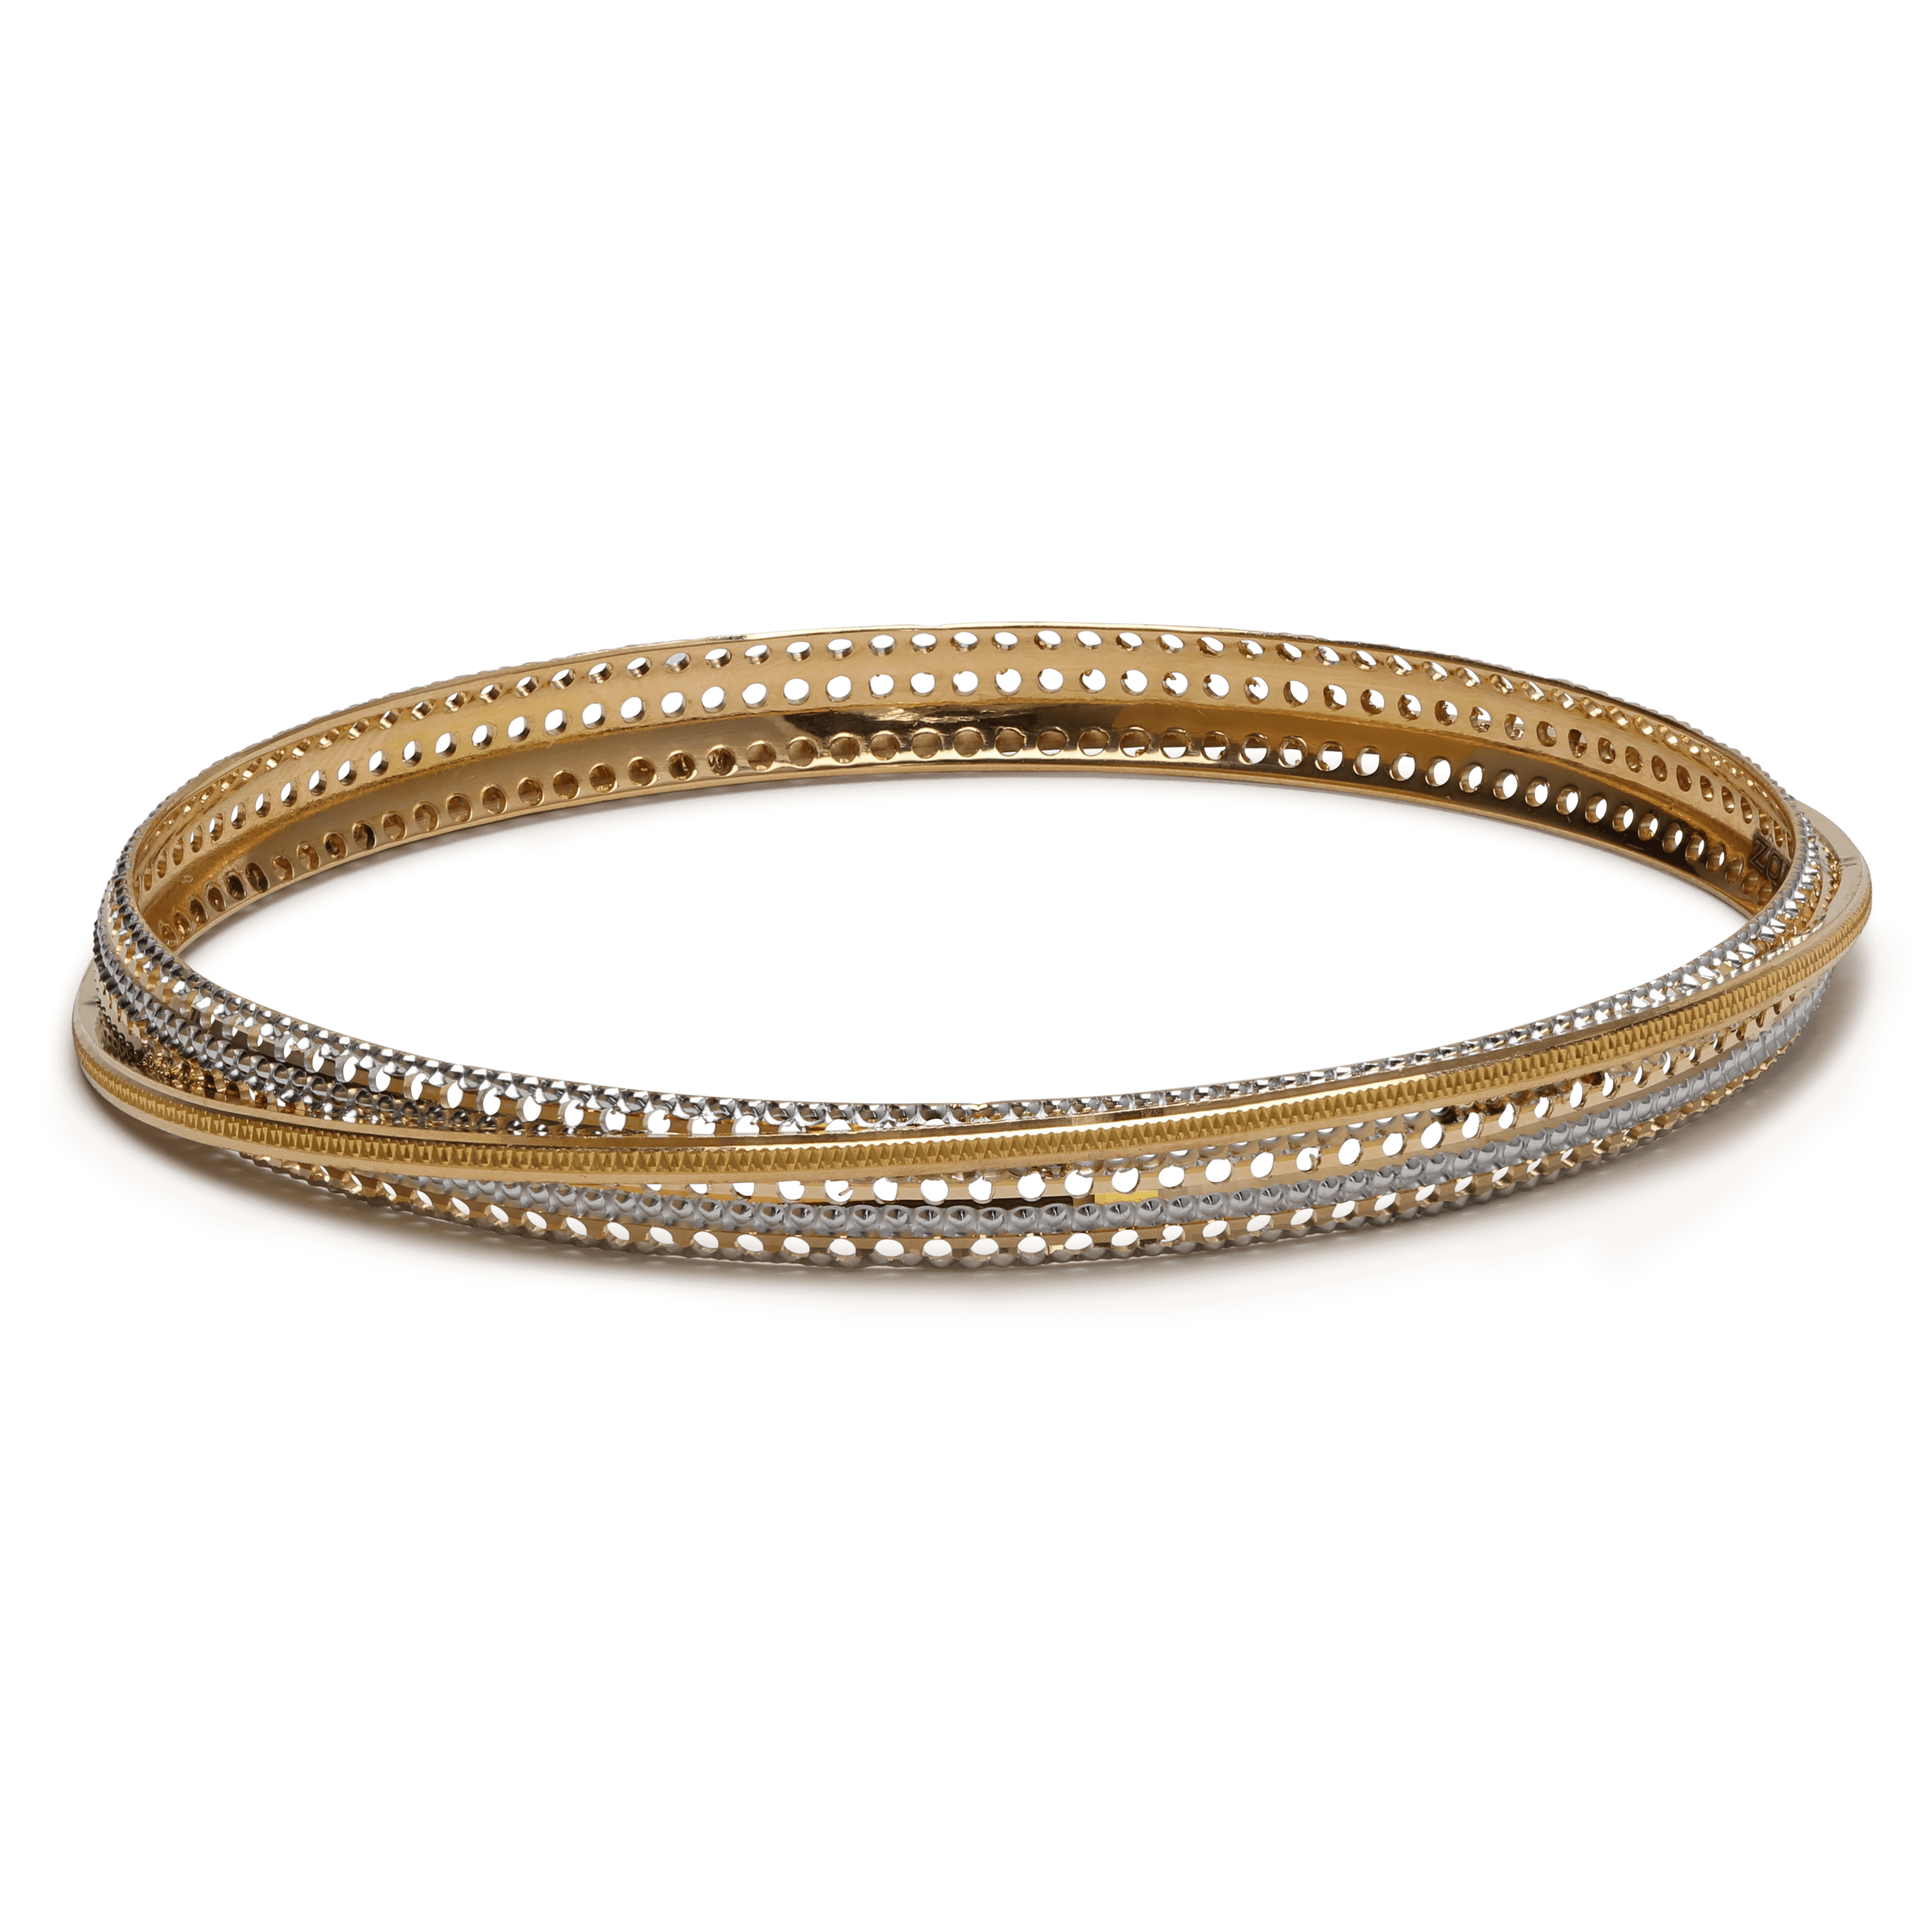 25775 - 22ct Gold Rhodium Plated Bangle